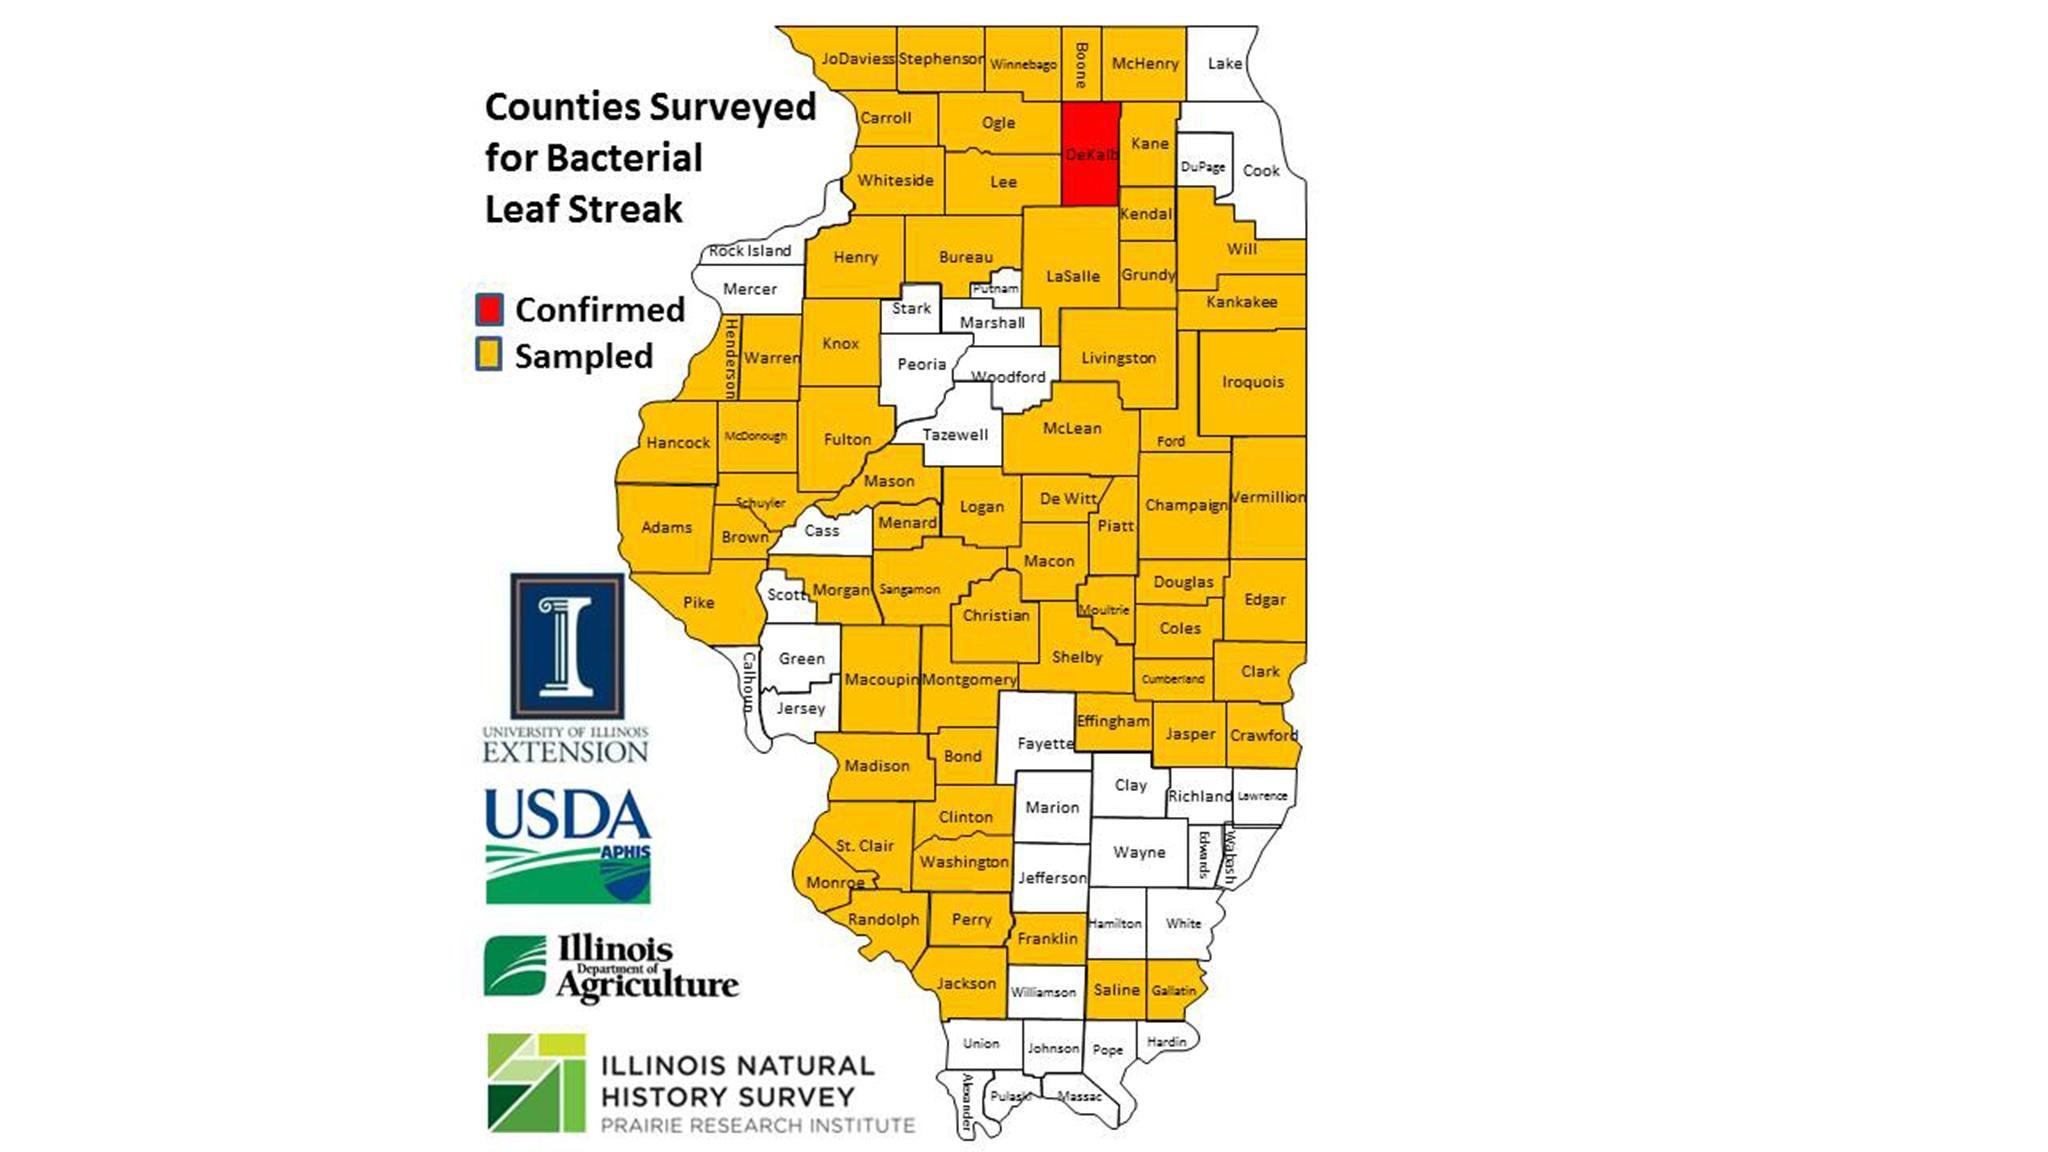 Cook County was not one of the 66 Illinois counties surveyed for bacterial leaf streak.